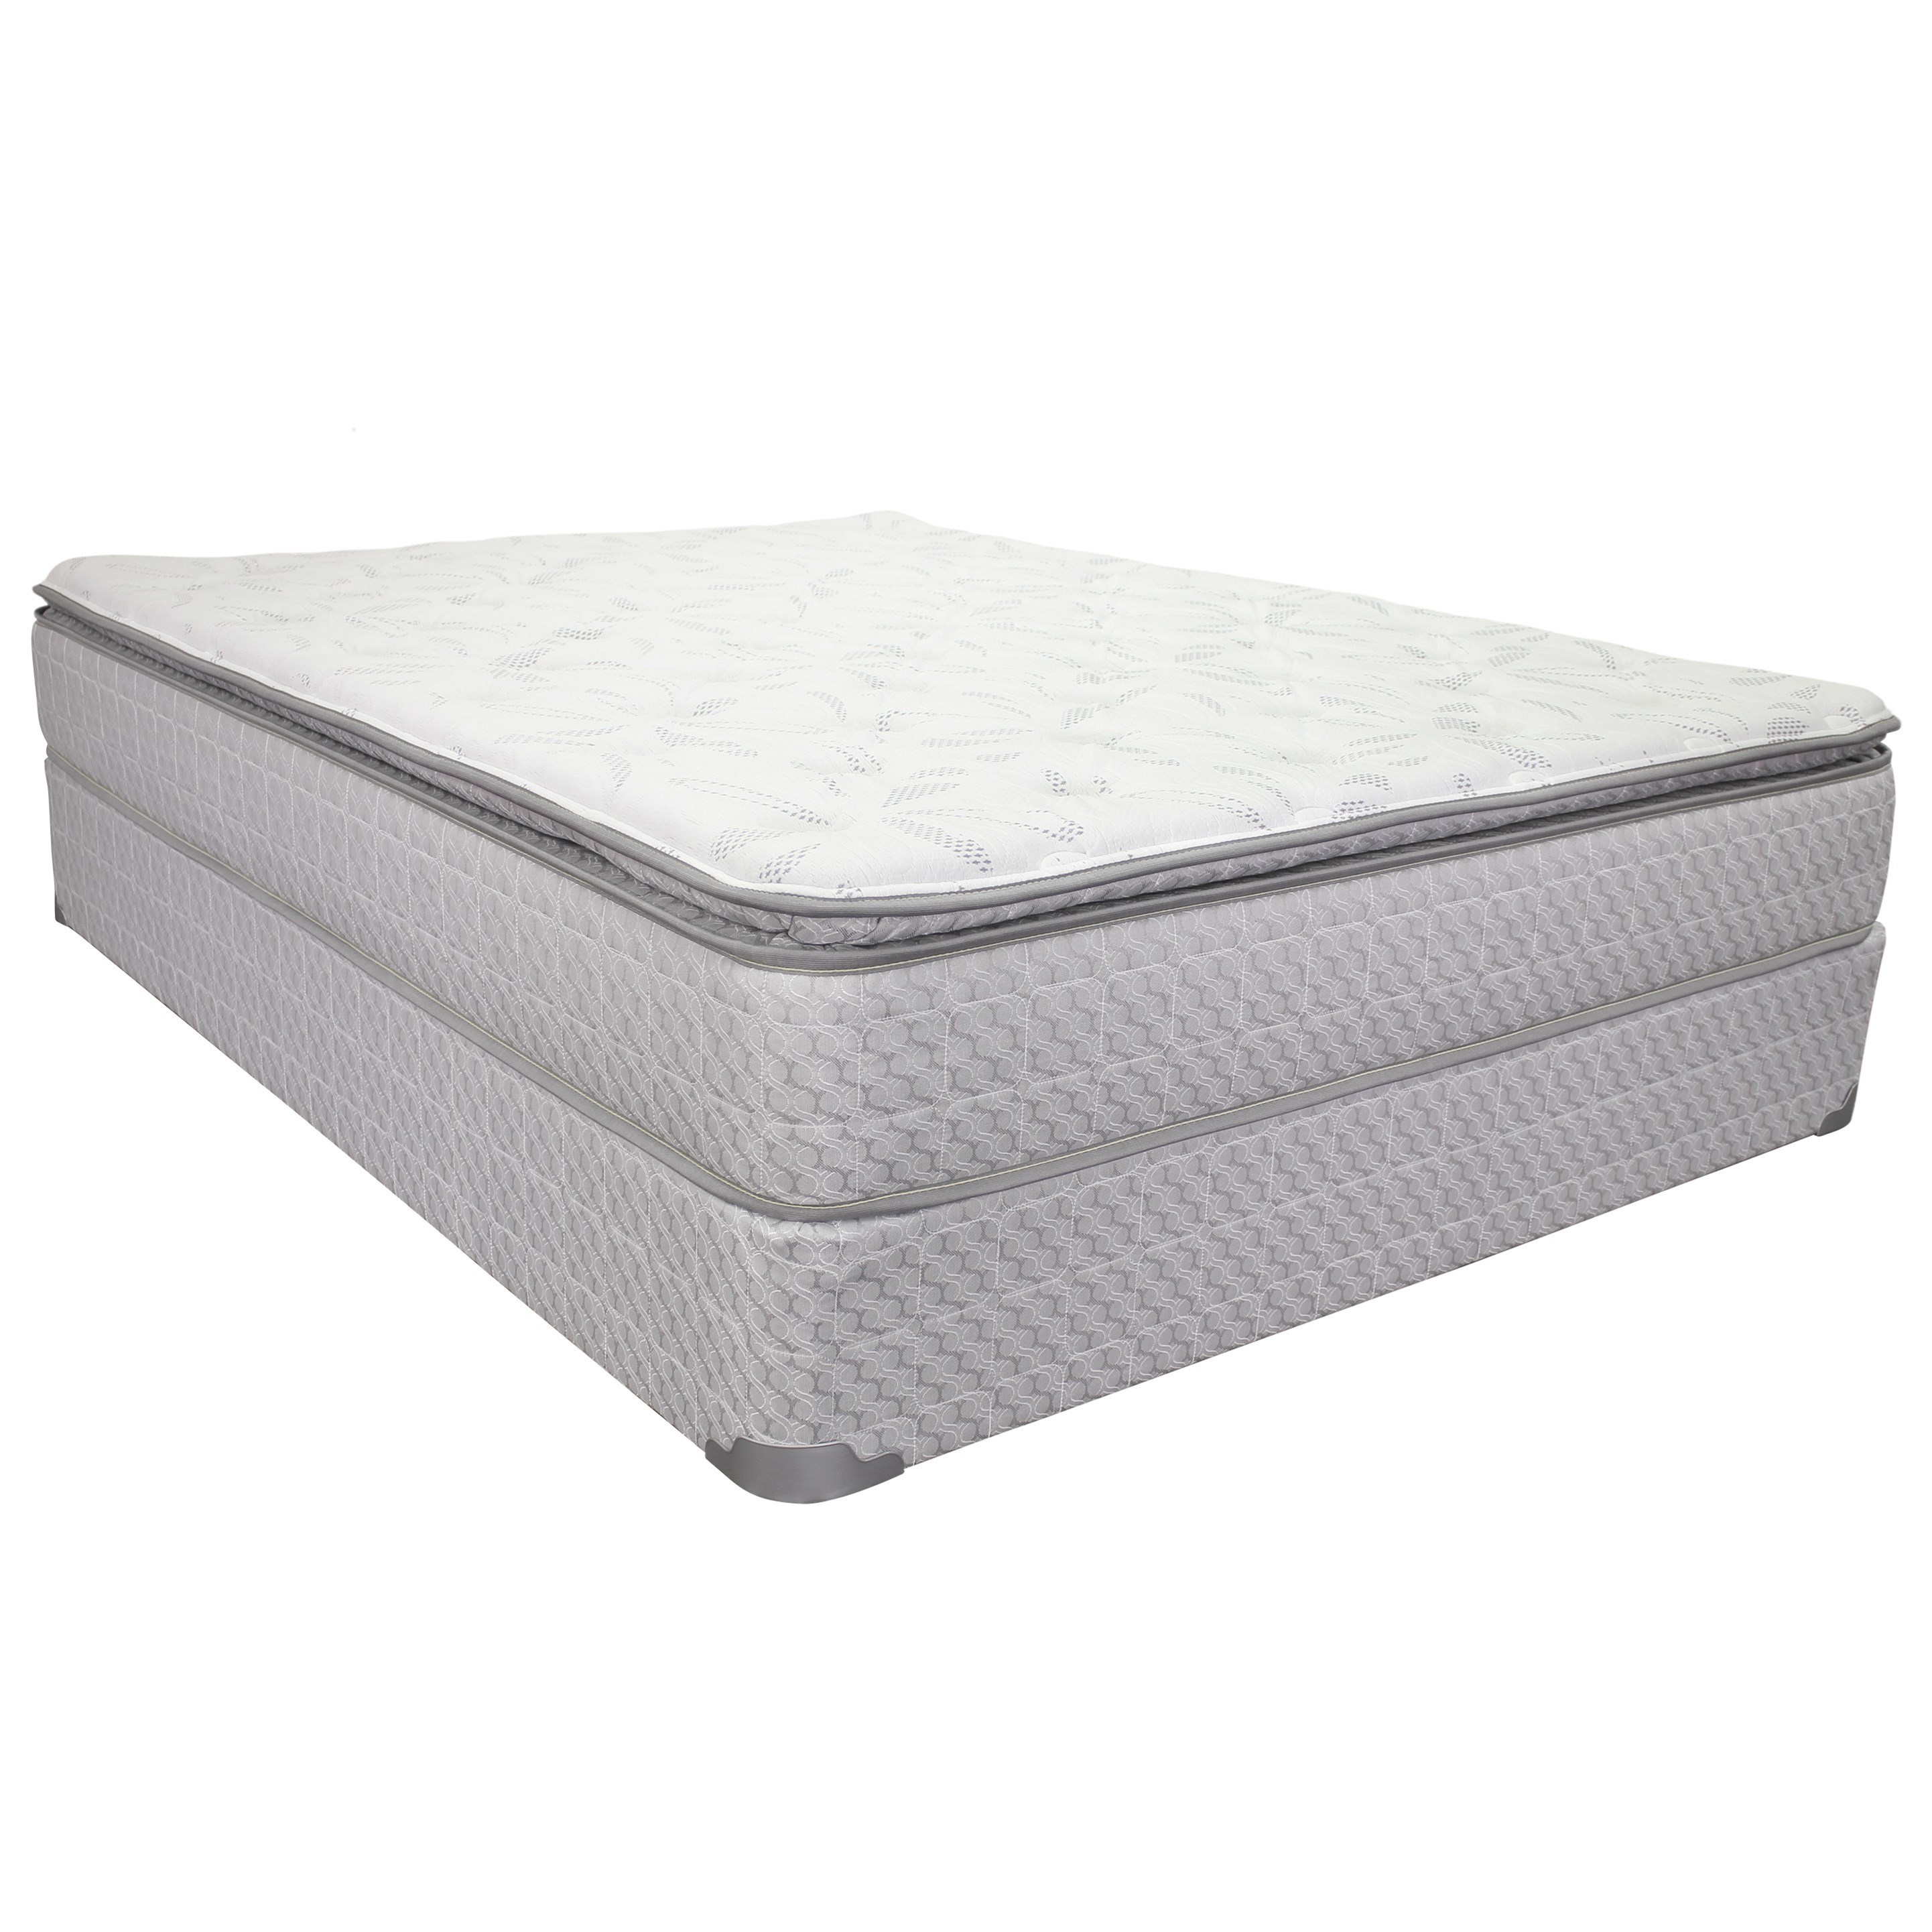 "Queen 10 1/2"" Pillow Top Mattress Set"